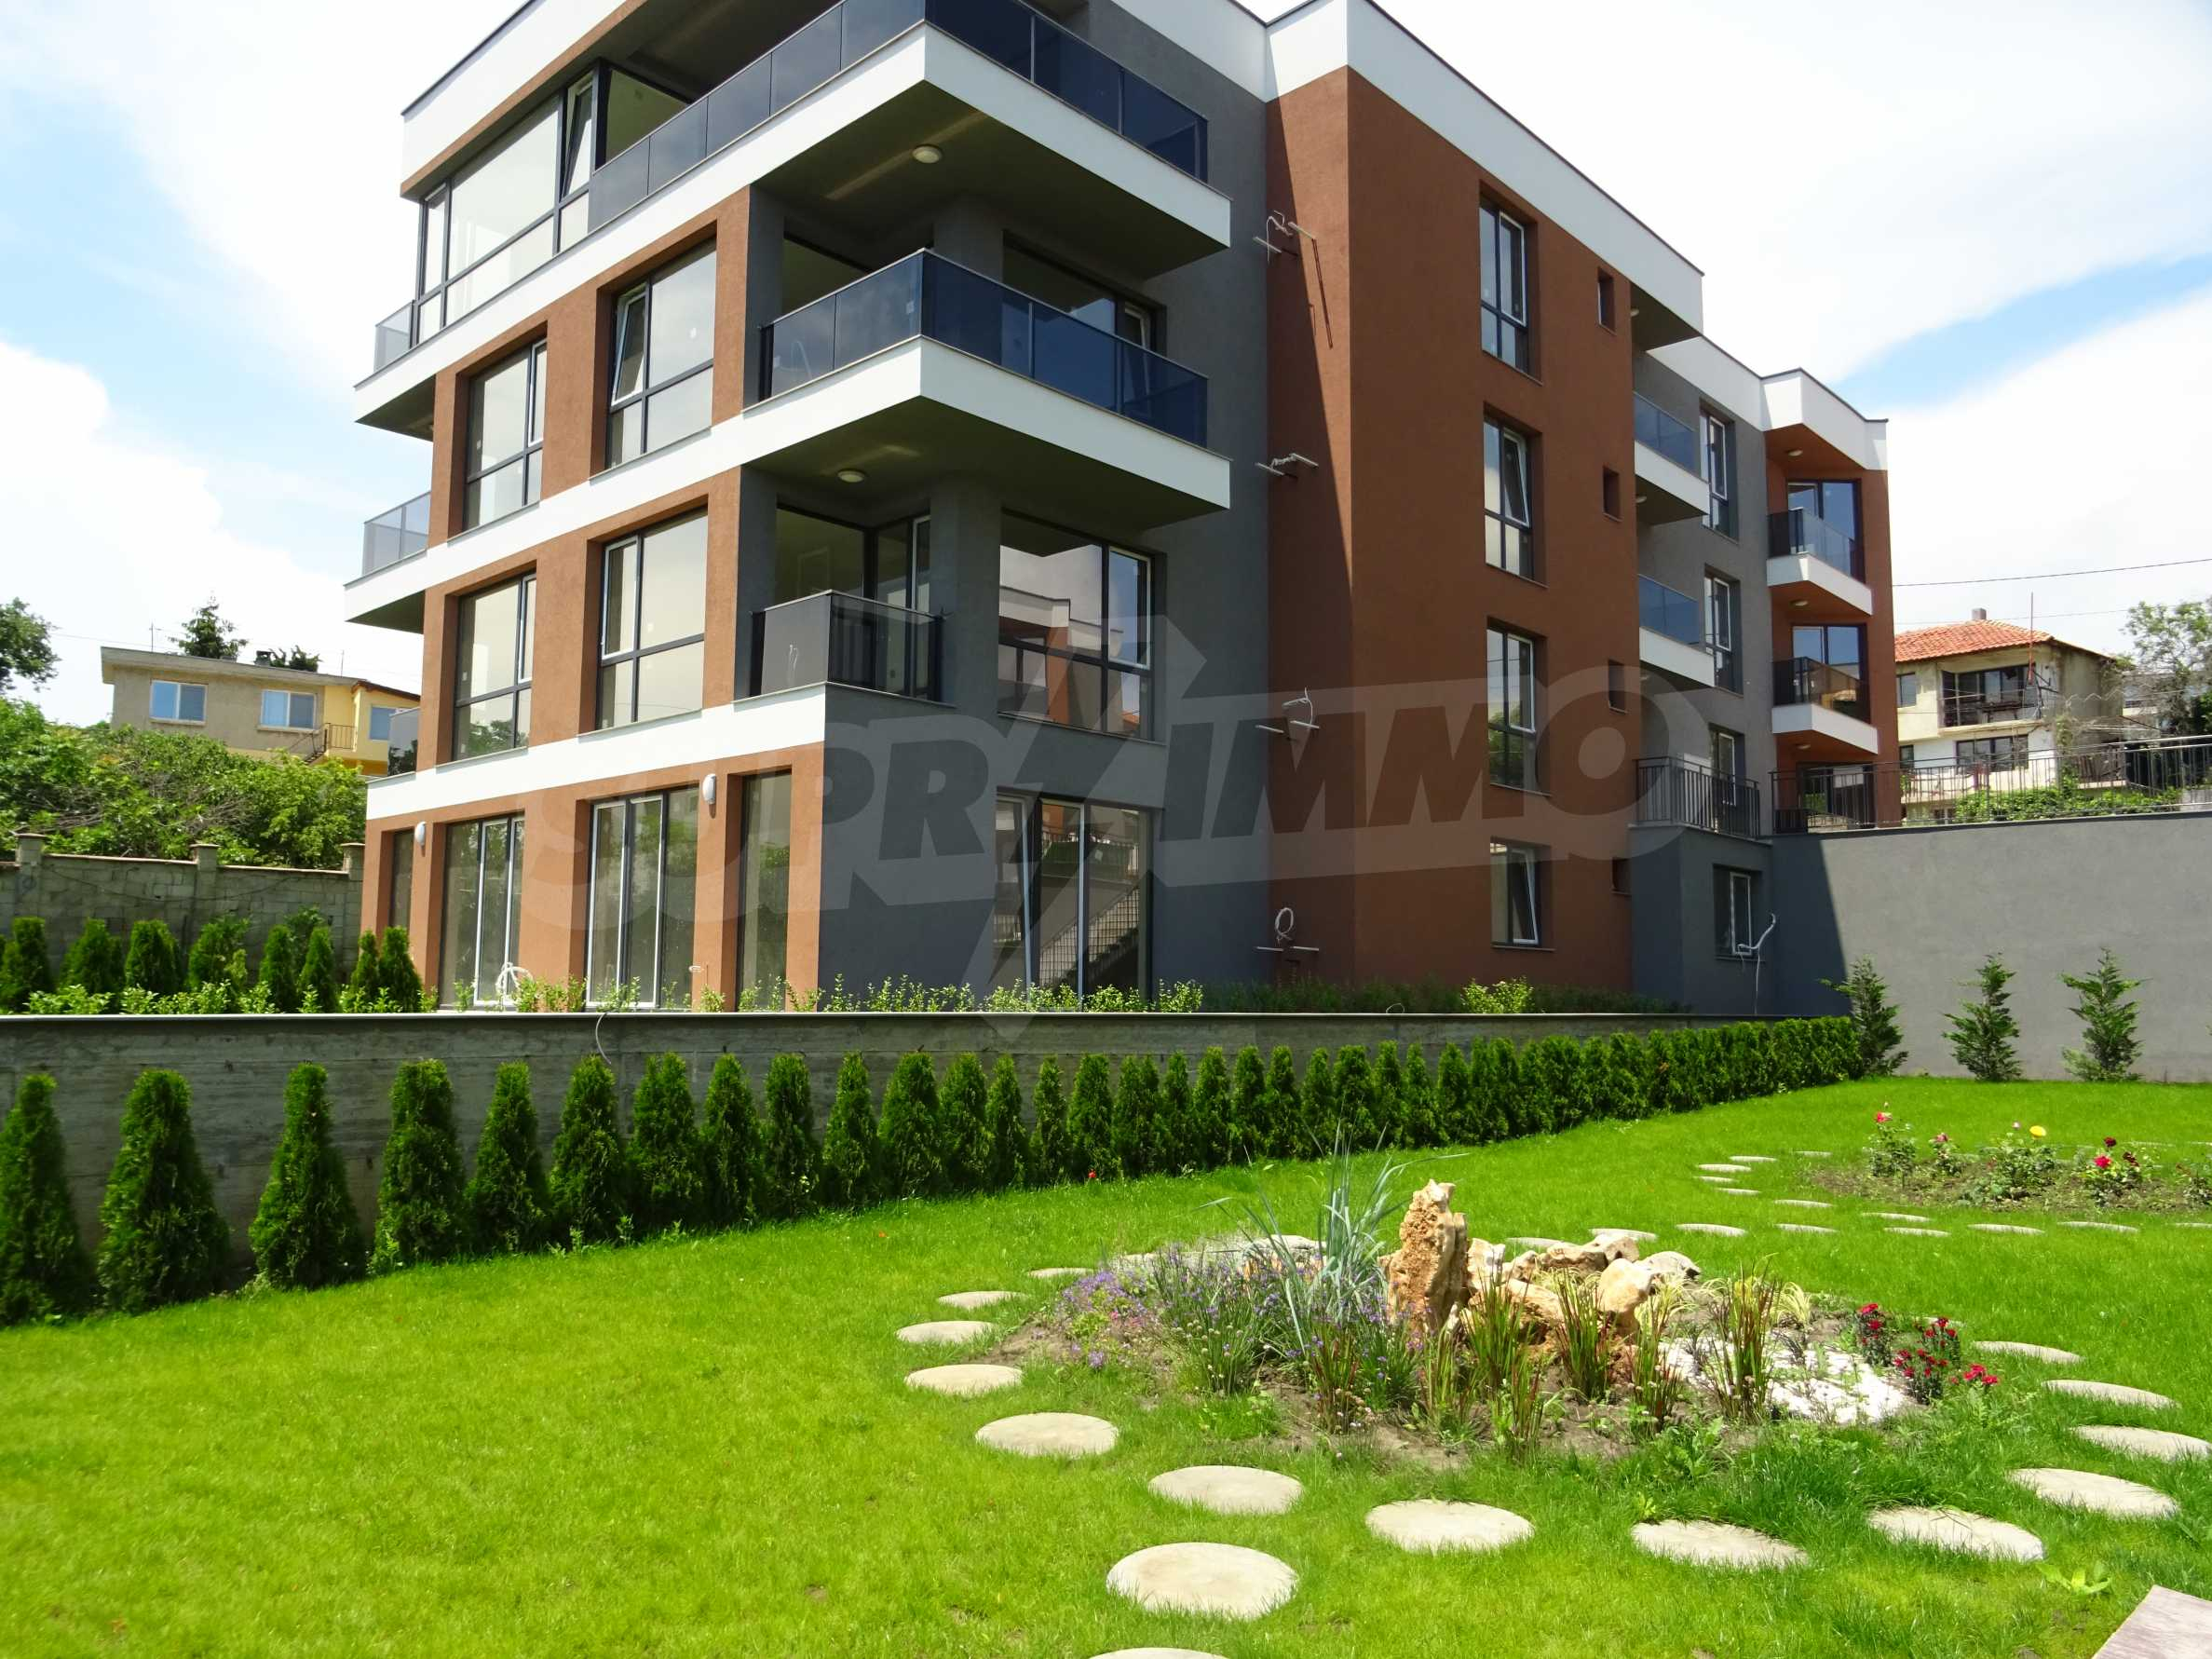 Apartment for sale in Varna, Bulgaria - Sales - apartment.